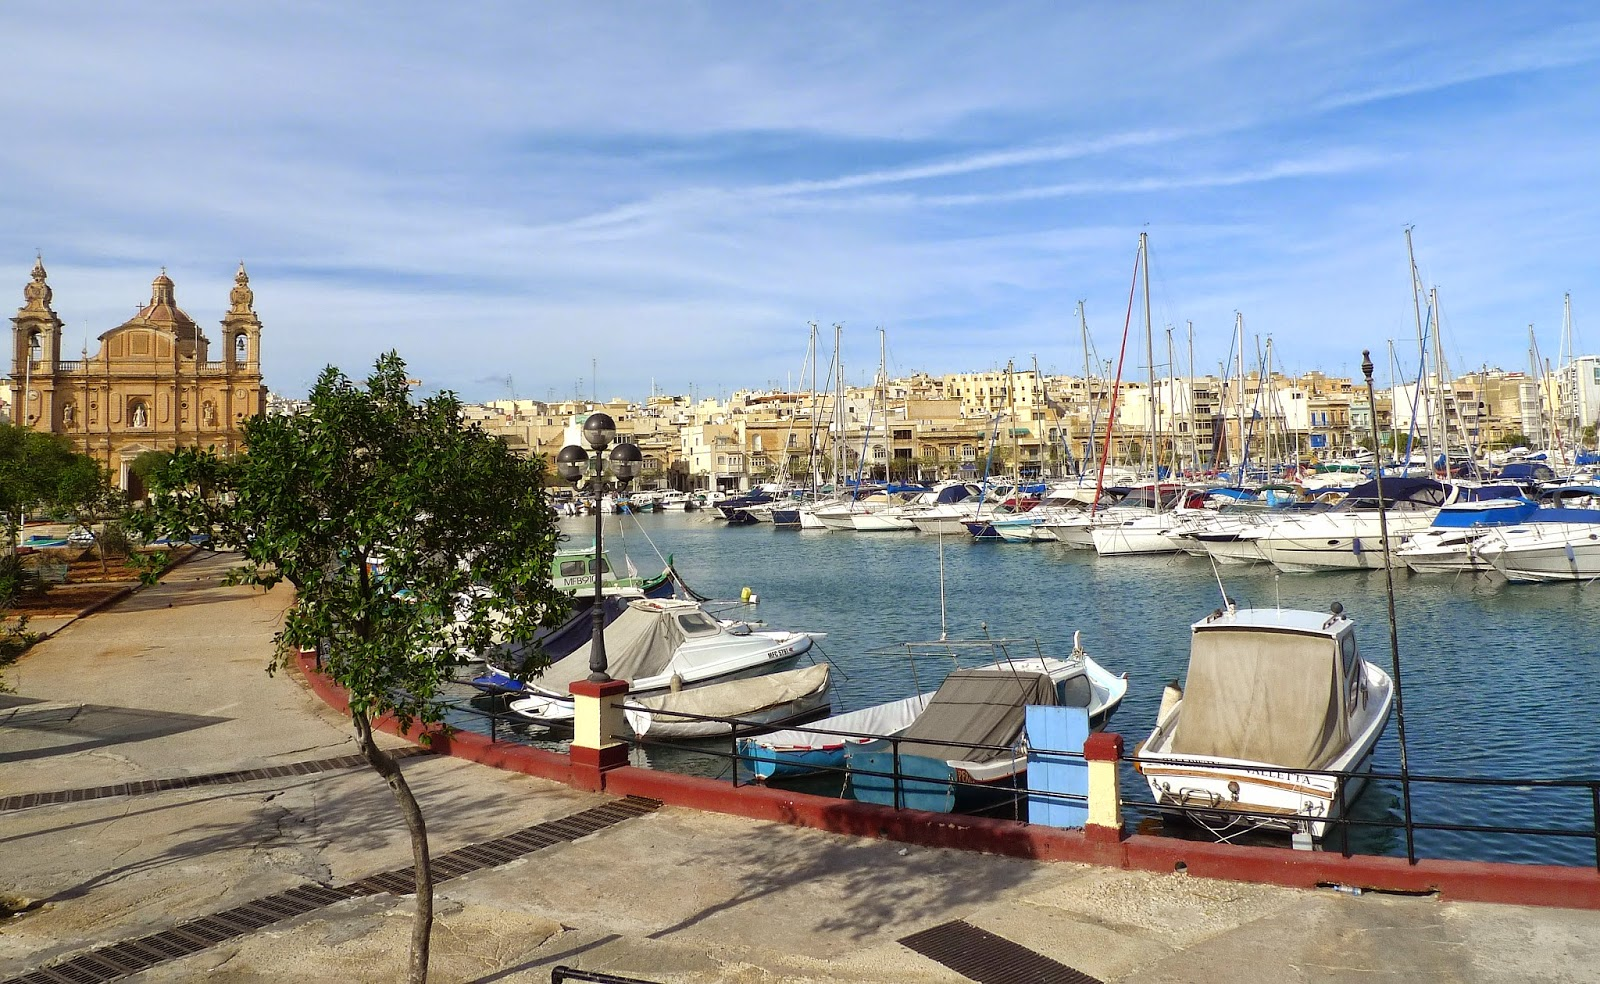 Sightseeing in Malta